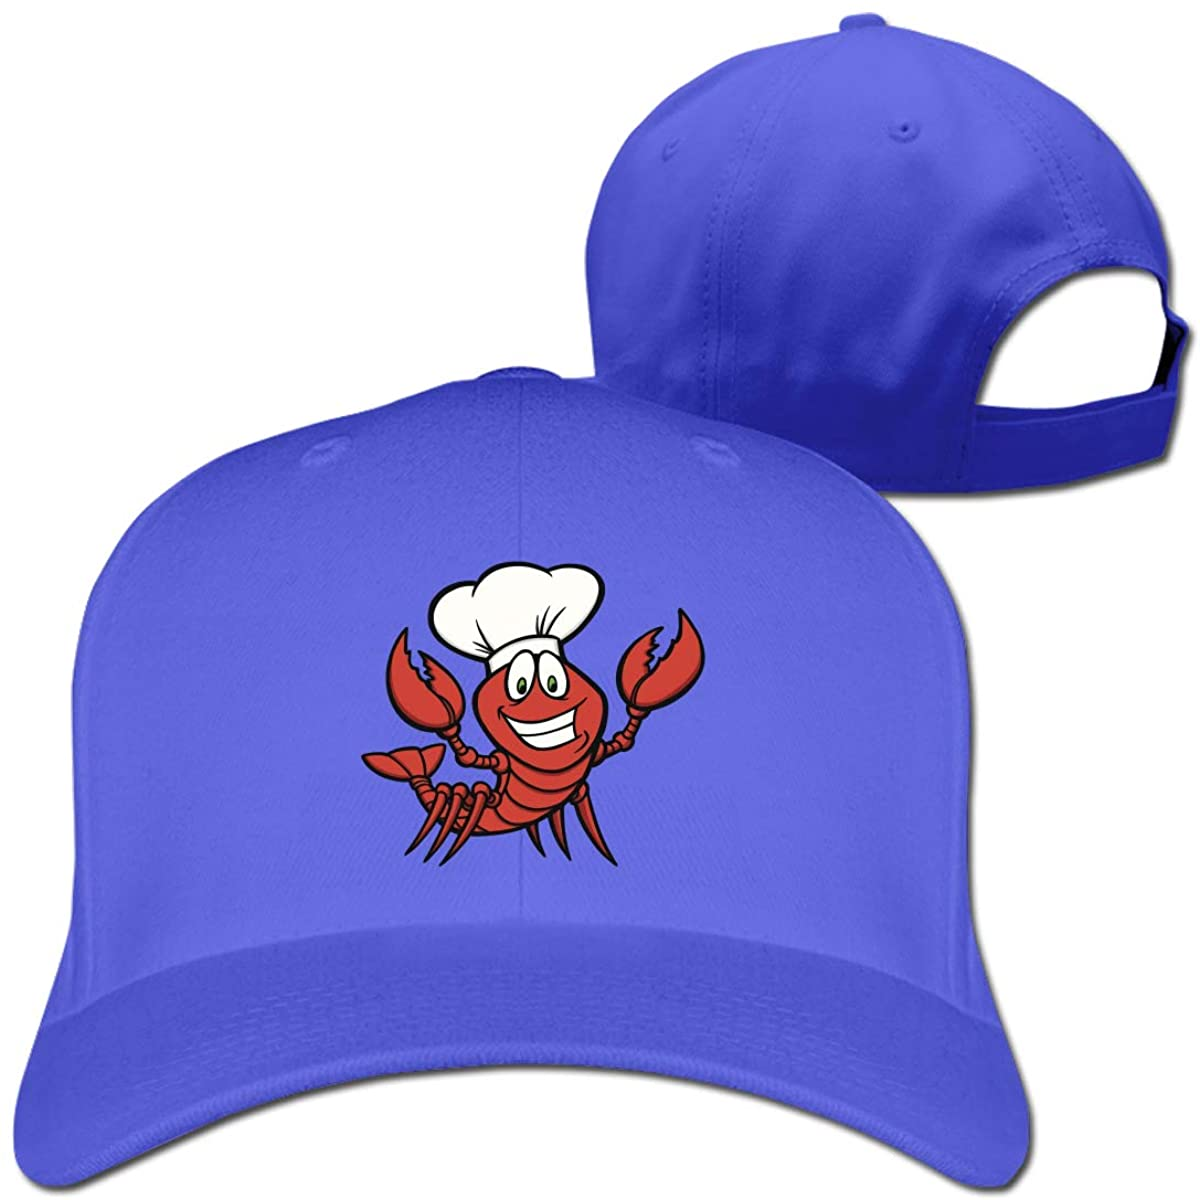 Crawfish Chef Cooking Printed Baseball Hat Adjustable Six Panel Caps Casquette